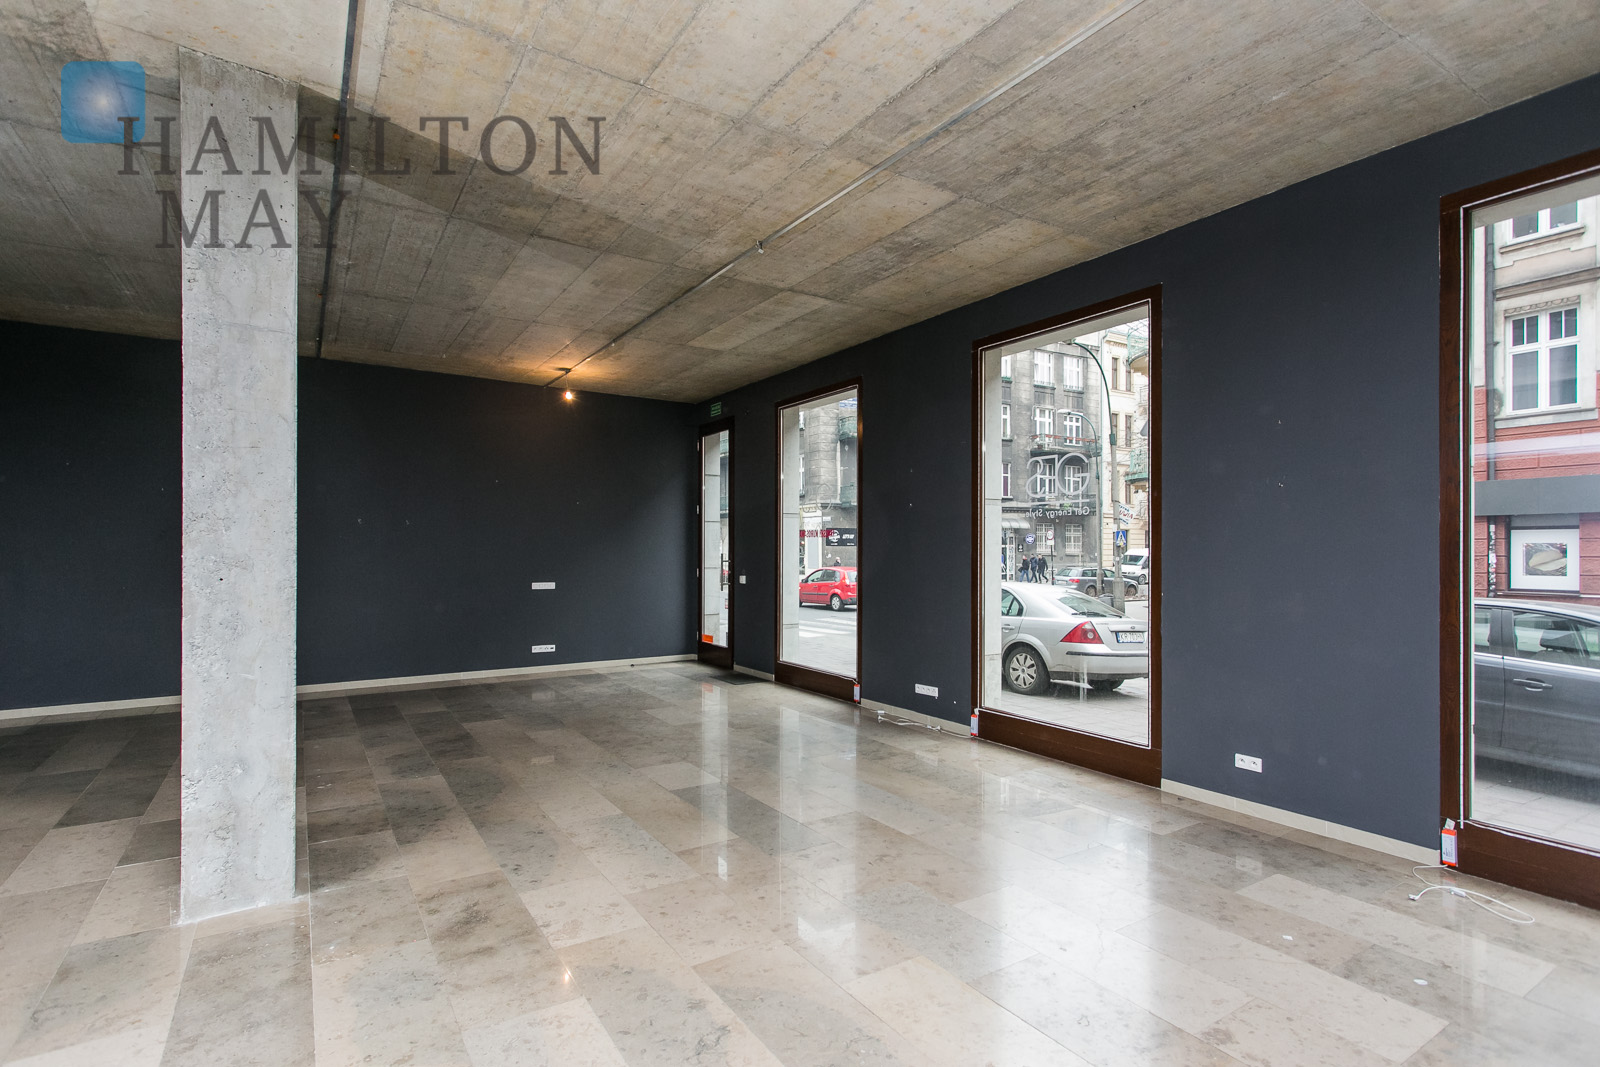 Visible, perfectly located commercial space set in a prime location in Kazimierz district Krakow for rent